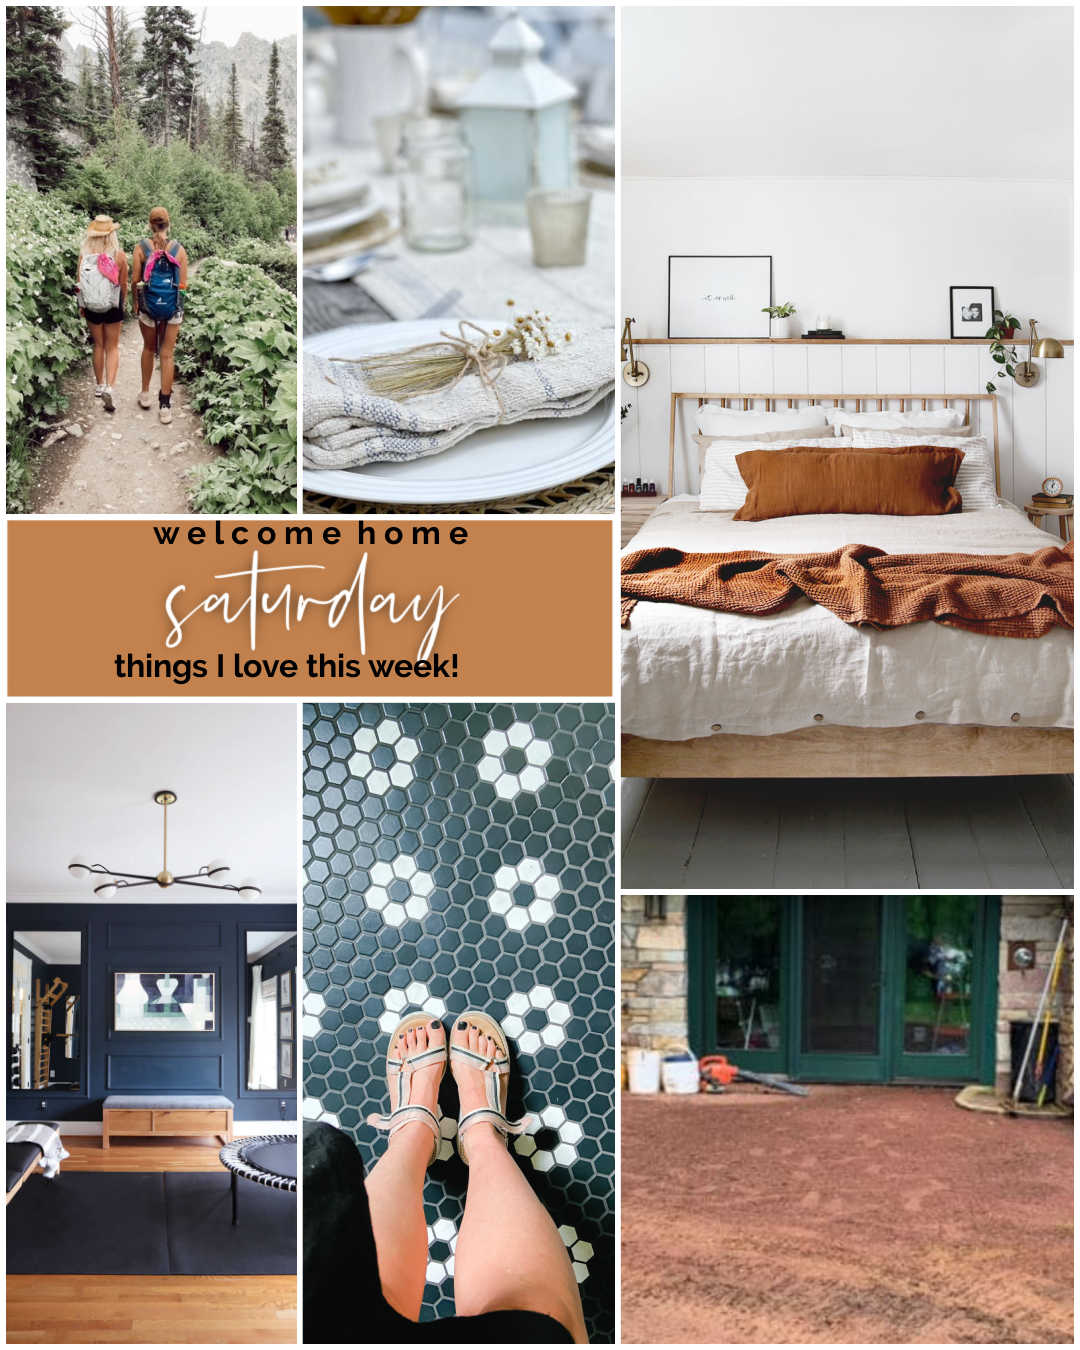 Welcome Home Saturday - Things I Love for July! I'm sharing some beautiful summer DIY ideas and things I love for July.